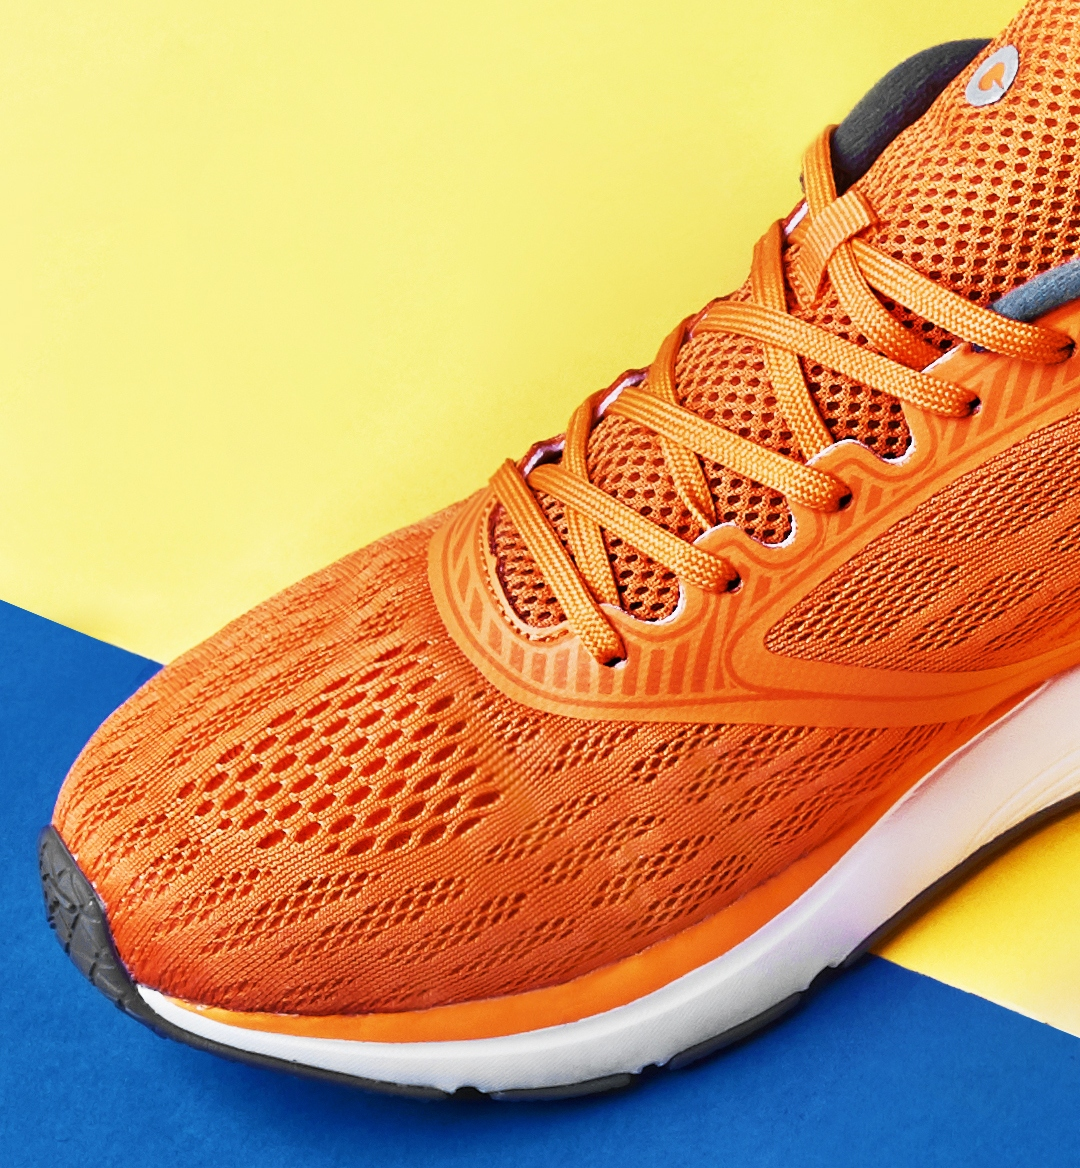 Amazfit-Antelope-Light-Outdoor-Running-Shoes